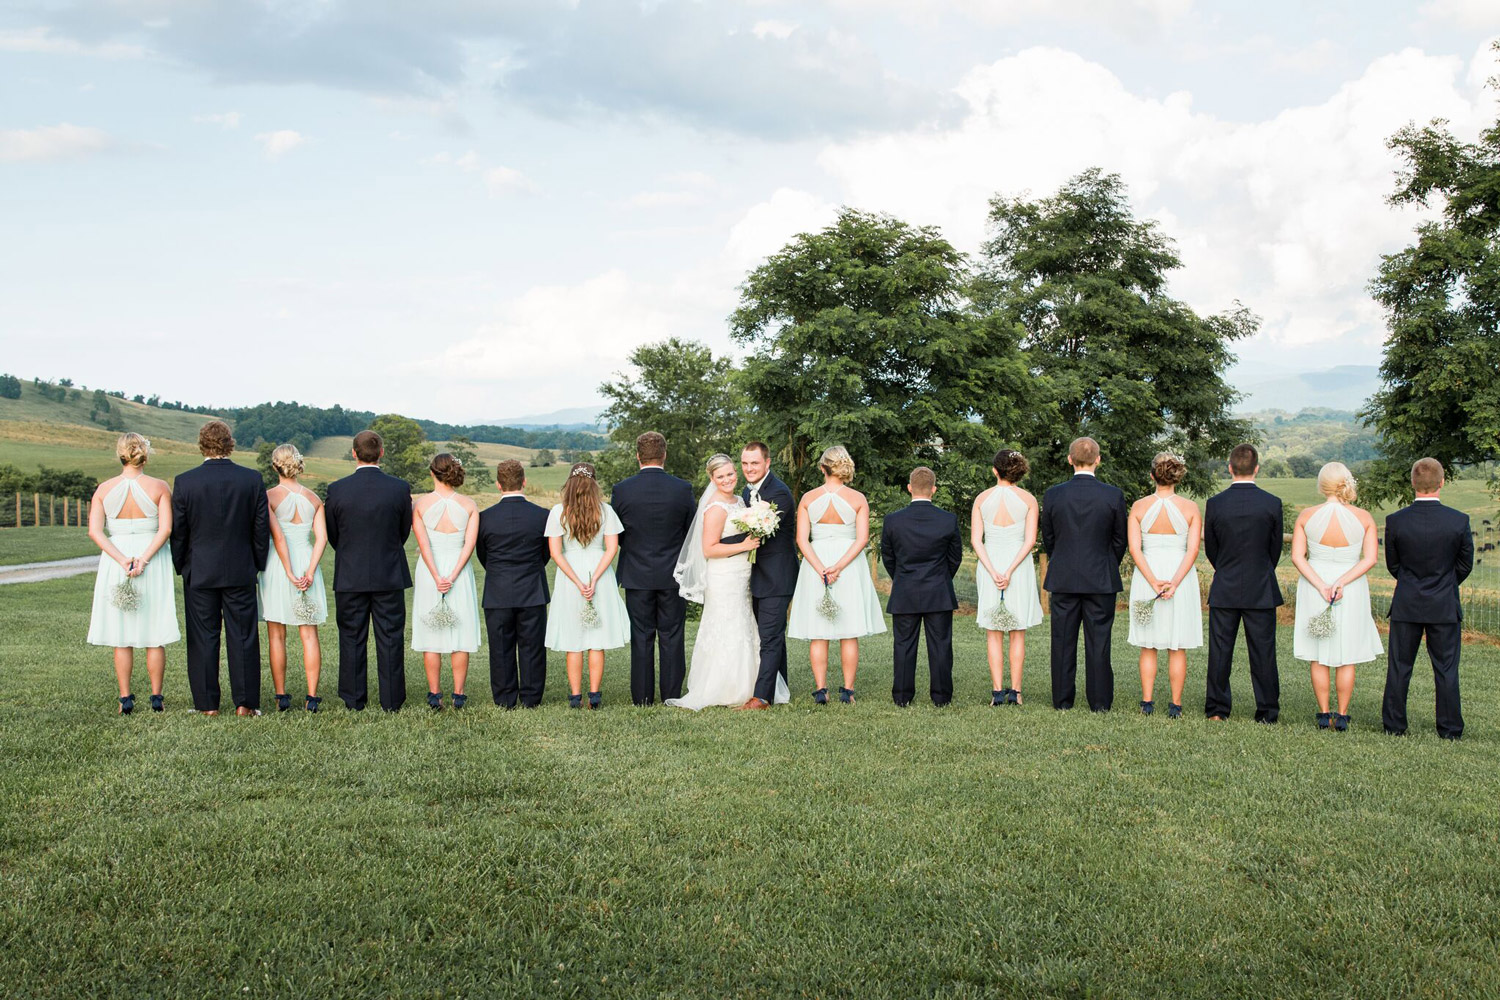 bridal_party_outdoors.jpg